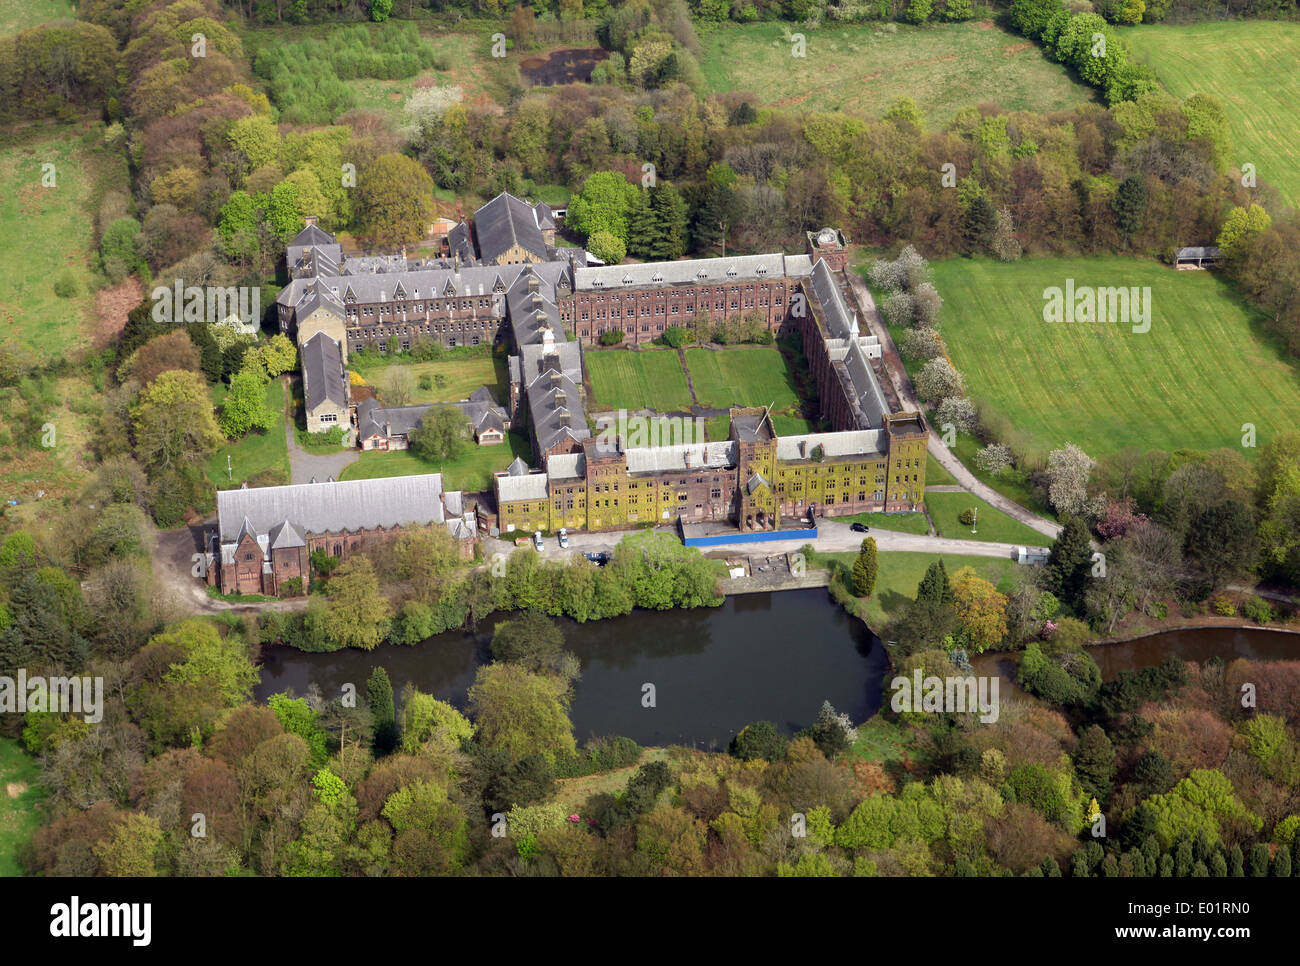 aerial view of St Joseph's College school in Walthew Park, Upholland, Lancashire - Stock Image